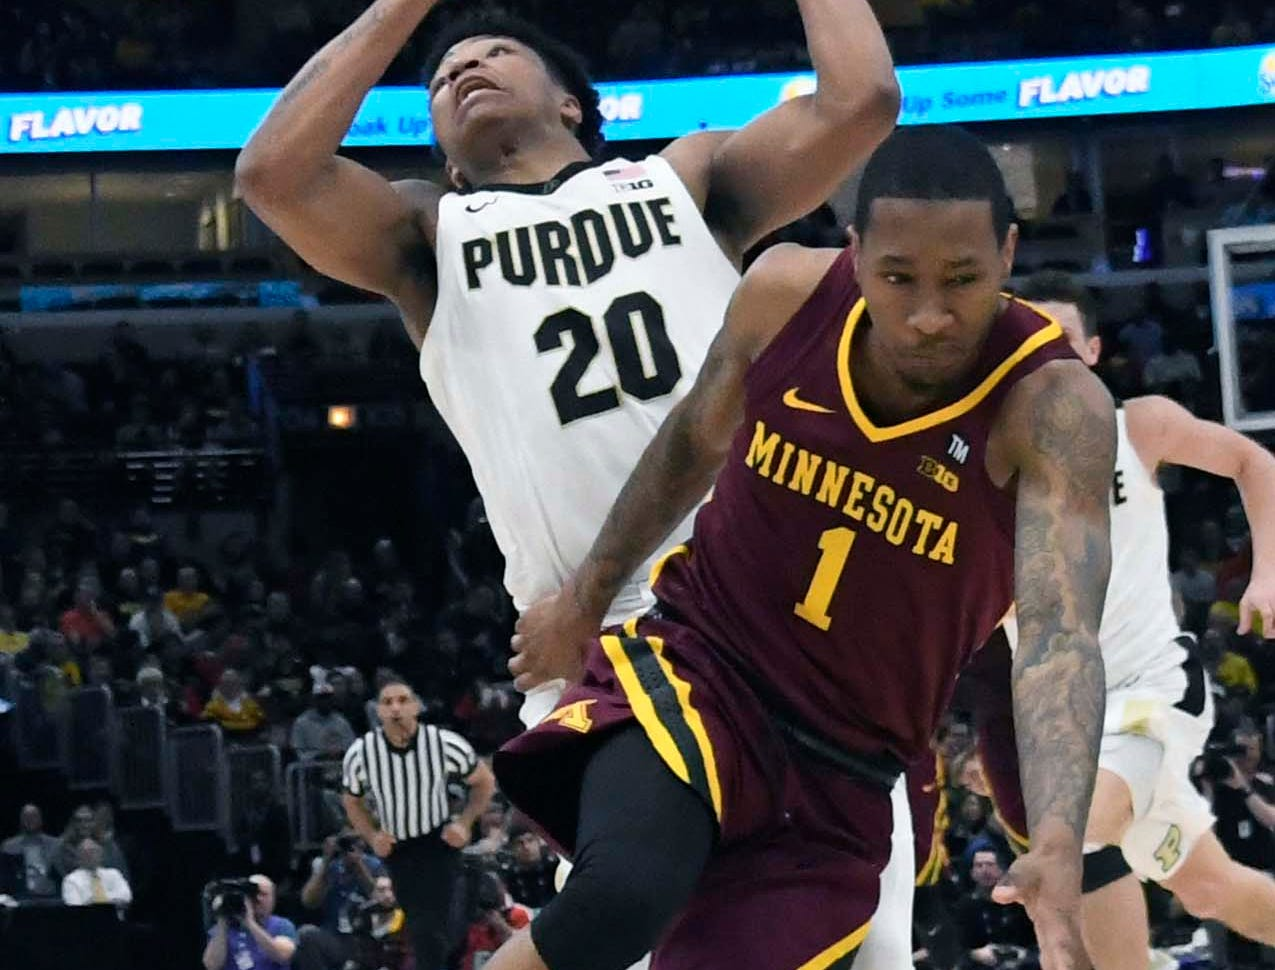 Mar 15, 2019; Chicago, IL, USA; Purdue Boilermakers guard Carsen Edwards (3) is defended by Minnesota Golden Gophers guard Dupree McBrayer (1) during the second half in the Big Ten conference tournament at United Center. Mandatory Credit: David Banks-USA TODAY Sports